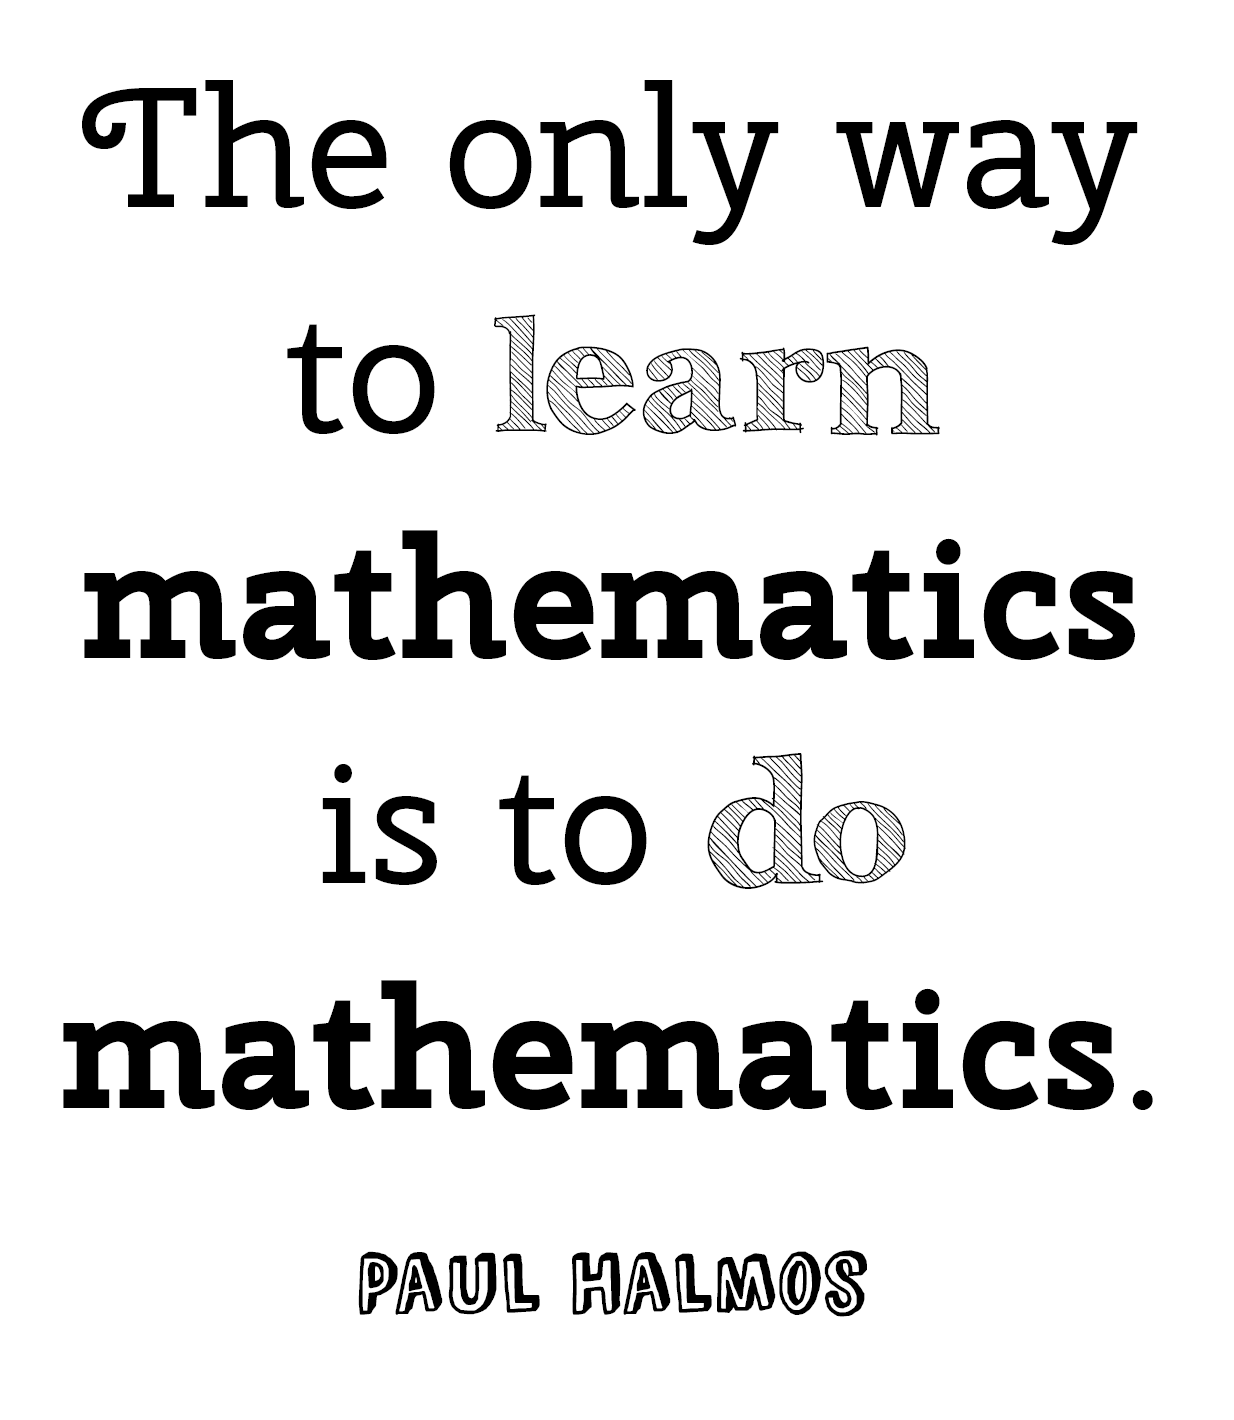 The-only-way-to-learn-mathematics-is-to-do-mathematics.-Paul-Halmos